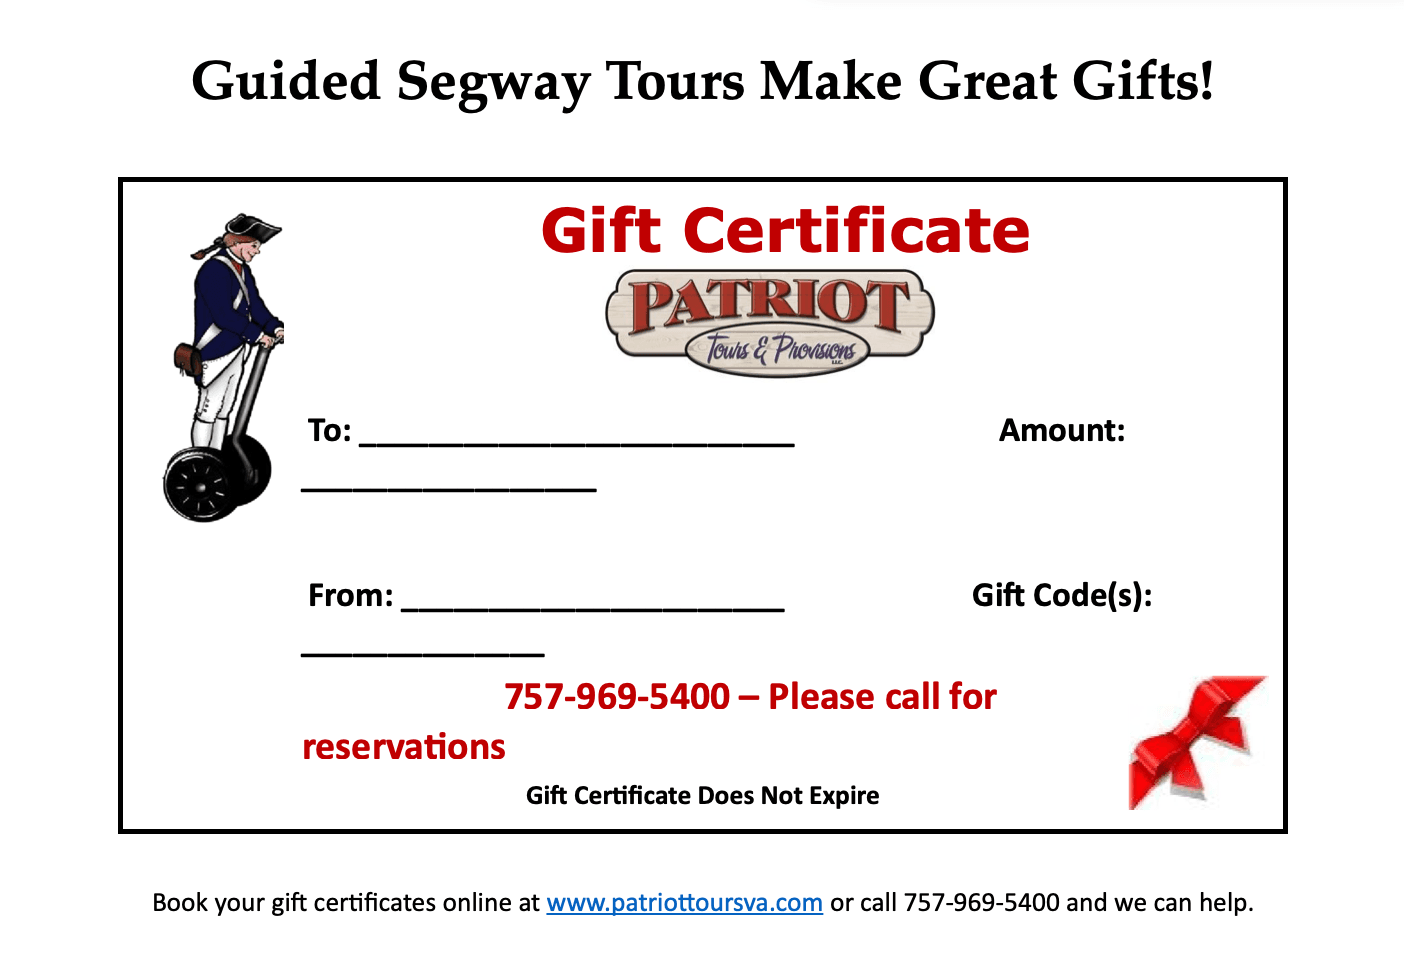 Patriot Tours and Provisions Gift Certificate